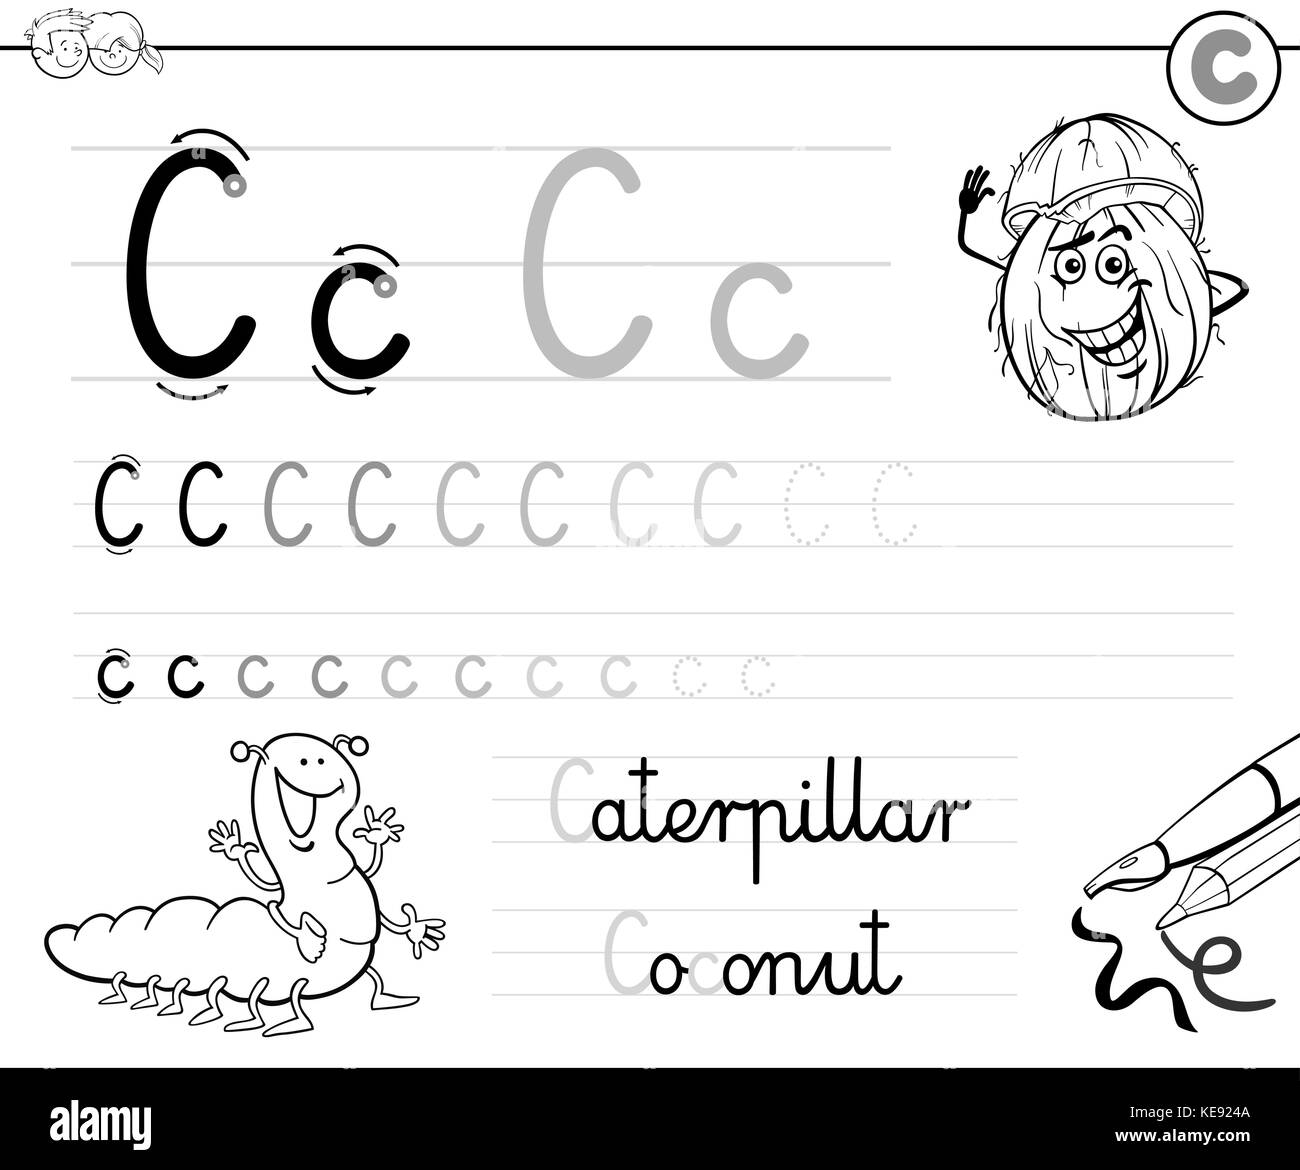 Workbooks letter c worksheets for preschool : Coloring Alphabet For Kids Stock Photos & Coloring Alphabet For ...